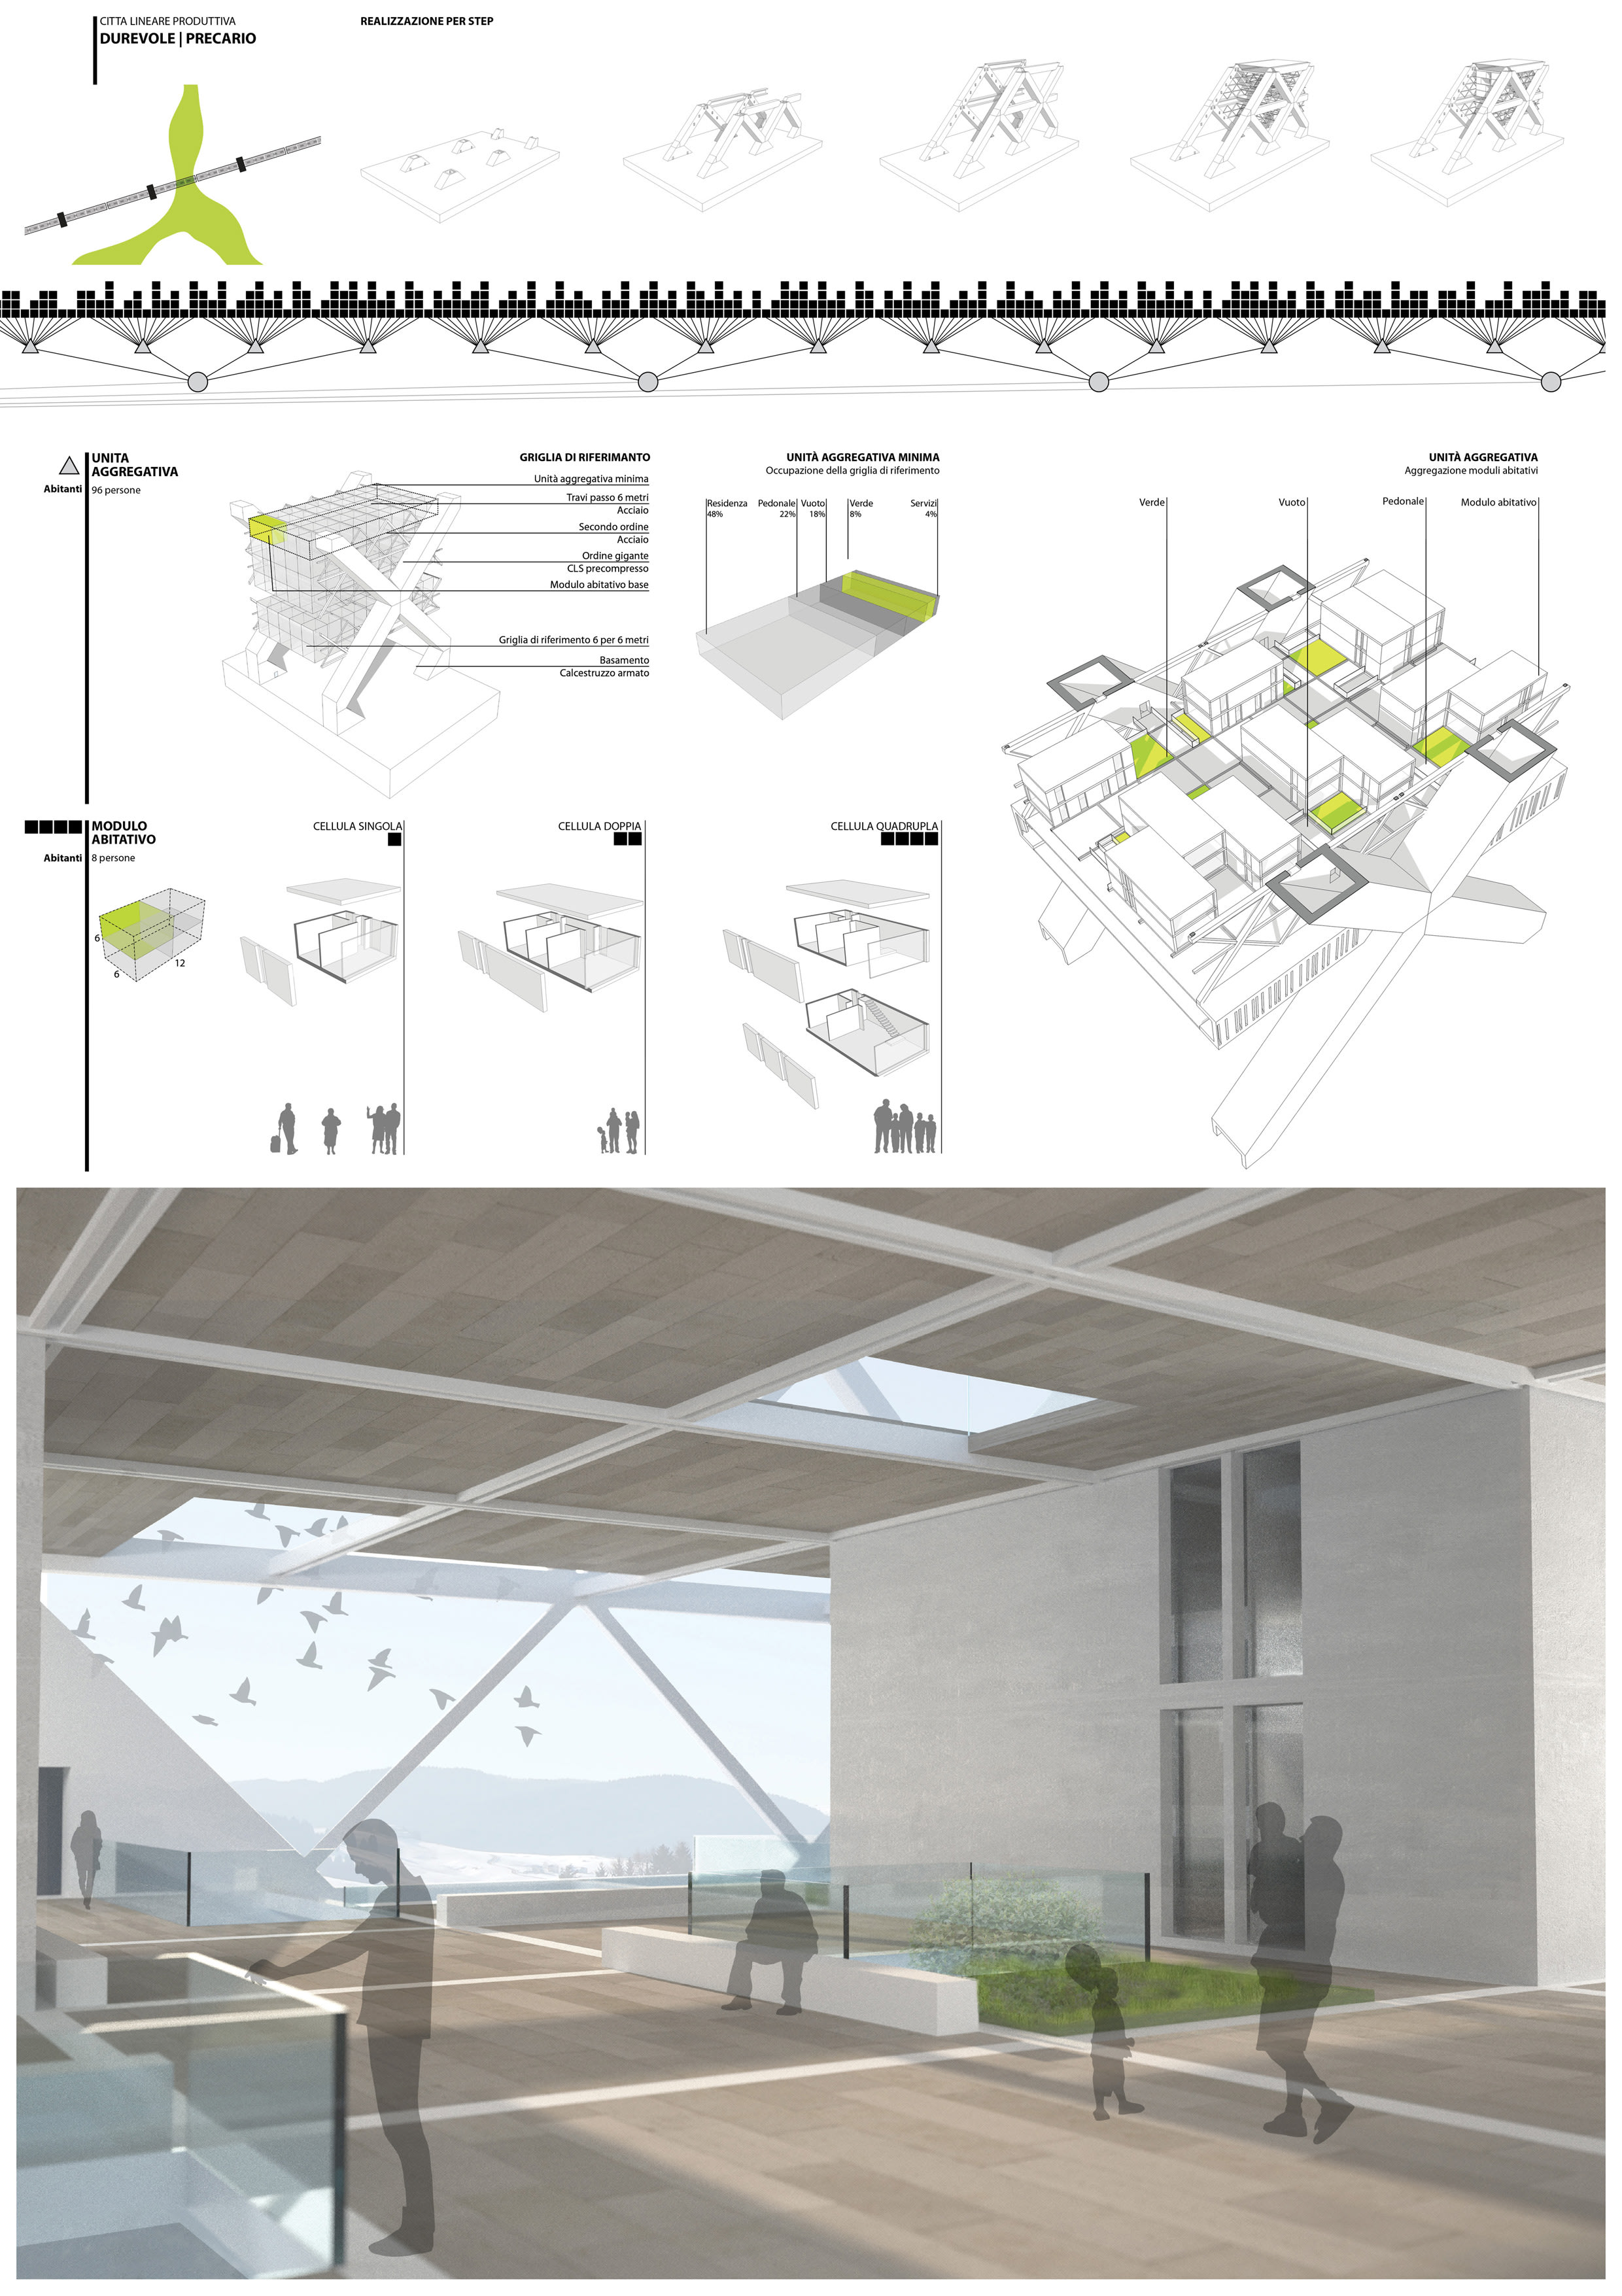 2g m sustainable architecture ecodencity divisare for Architecture 2g